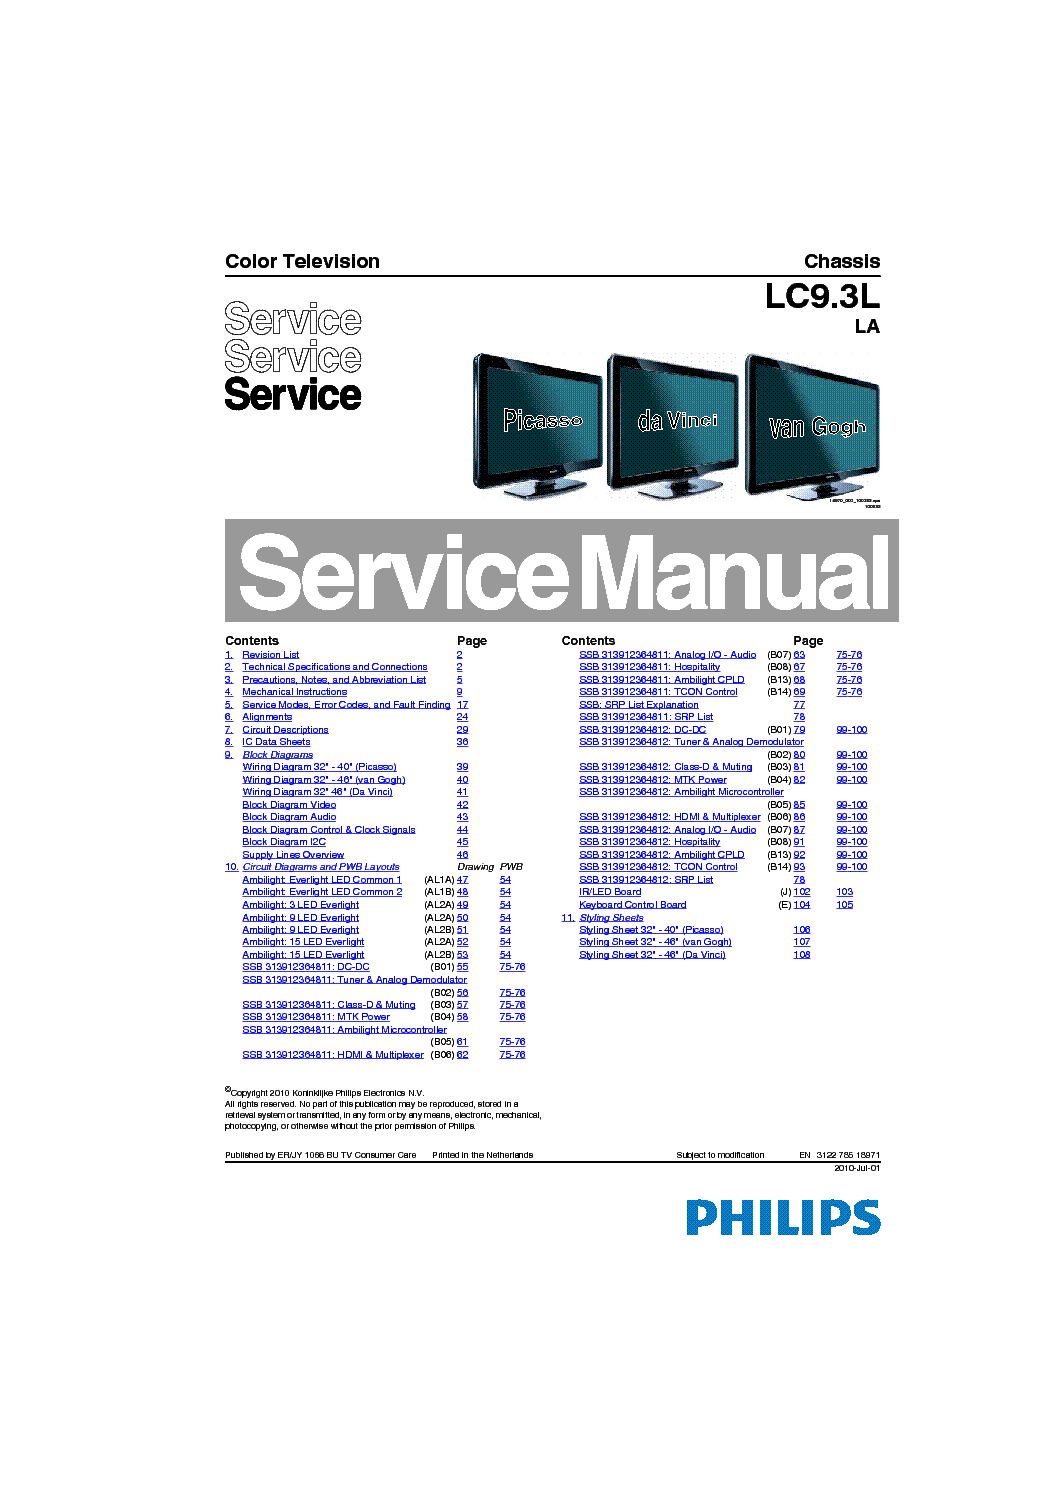 PHILIPS CHASSIS LC9.3LLA 312278518971 service manual (1st page)